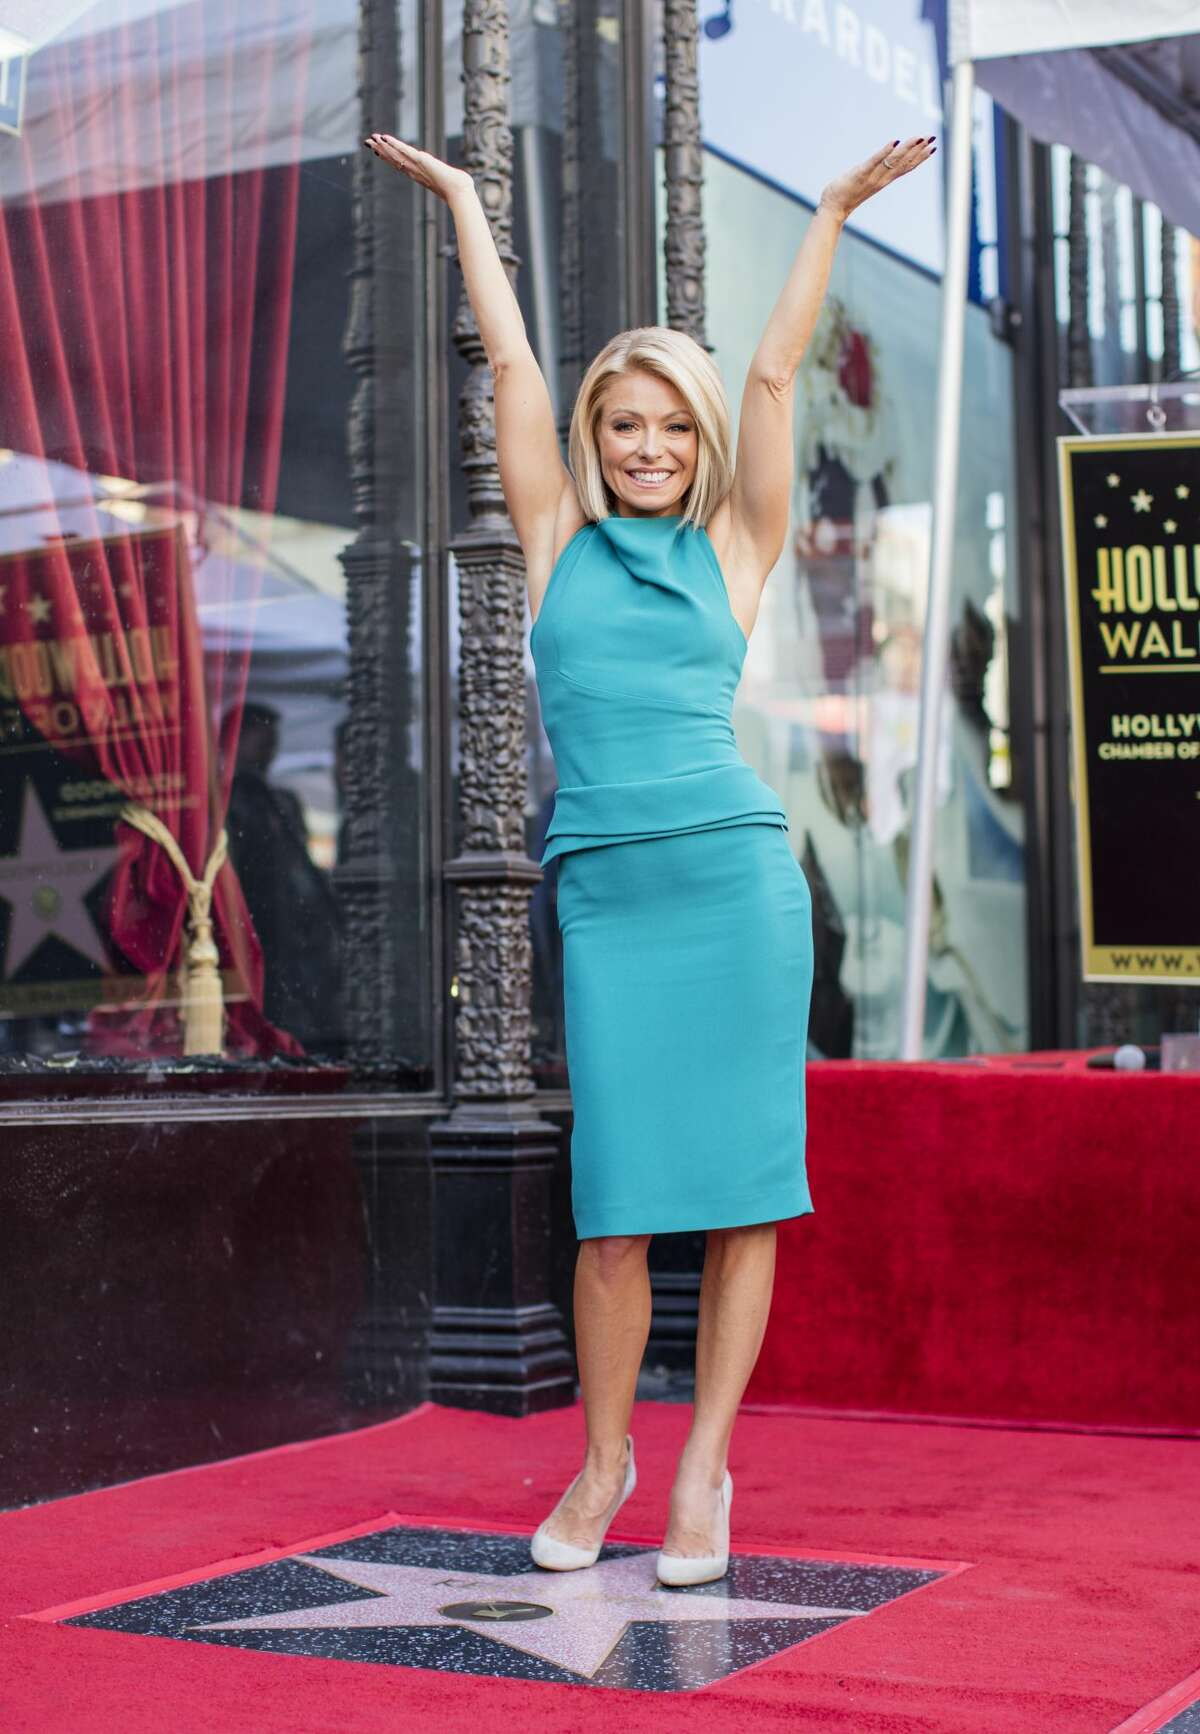 HOLLYWOOD, CA - OCTOBER 12: Television host Kelly Ripa poses with her star on the Hollywood Walk of Fame on October 12, 2015 in Hollywood, California. (Photo by Mark Davis/Getty Images)